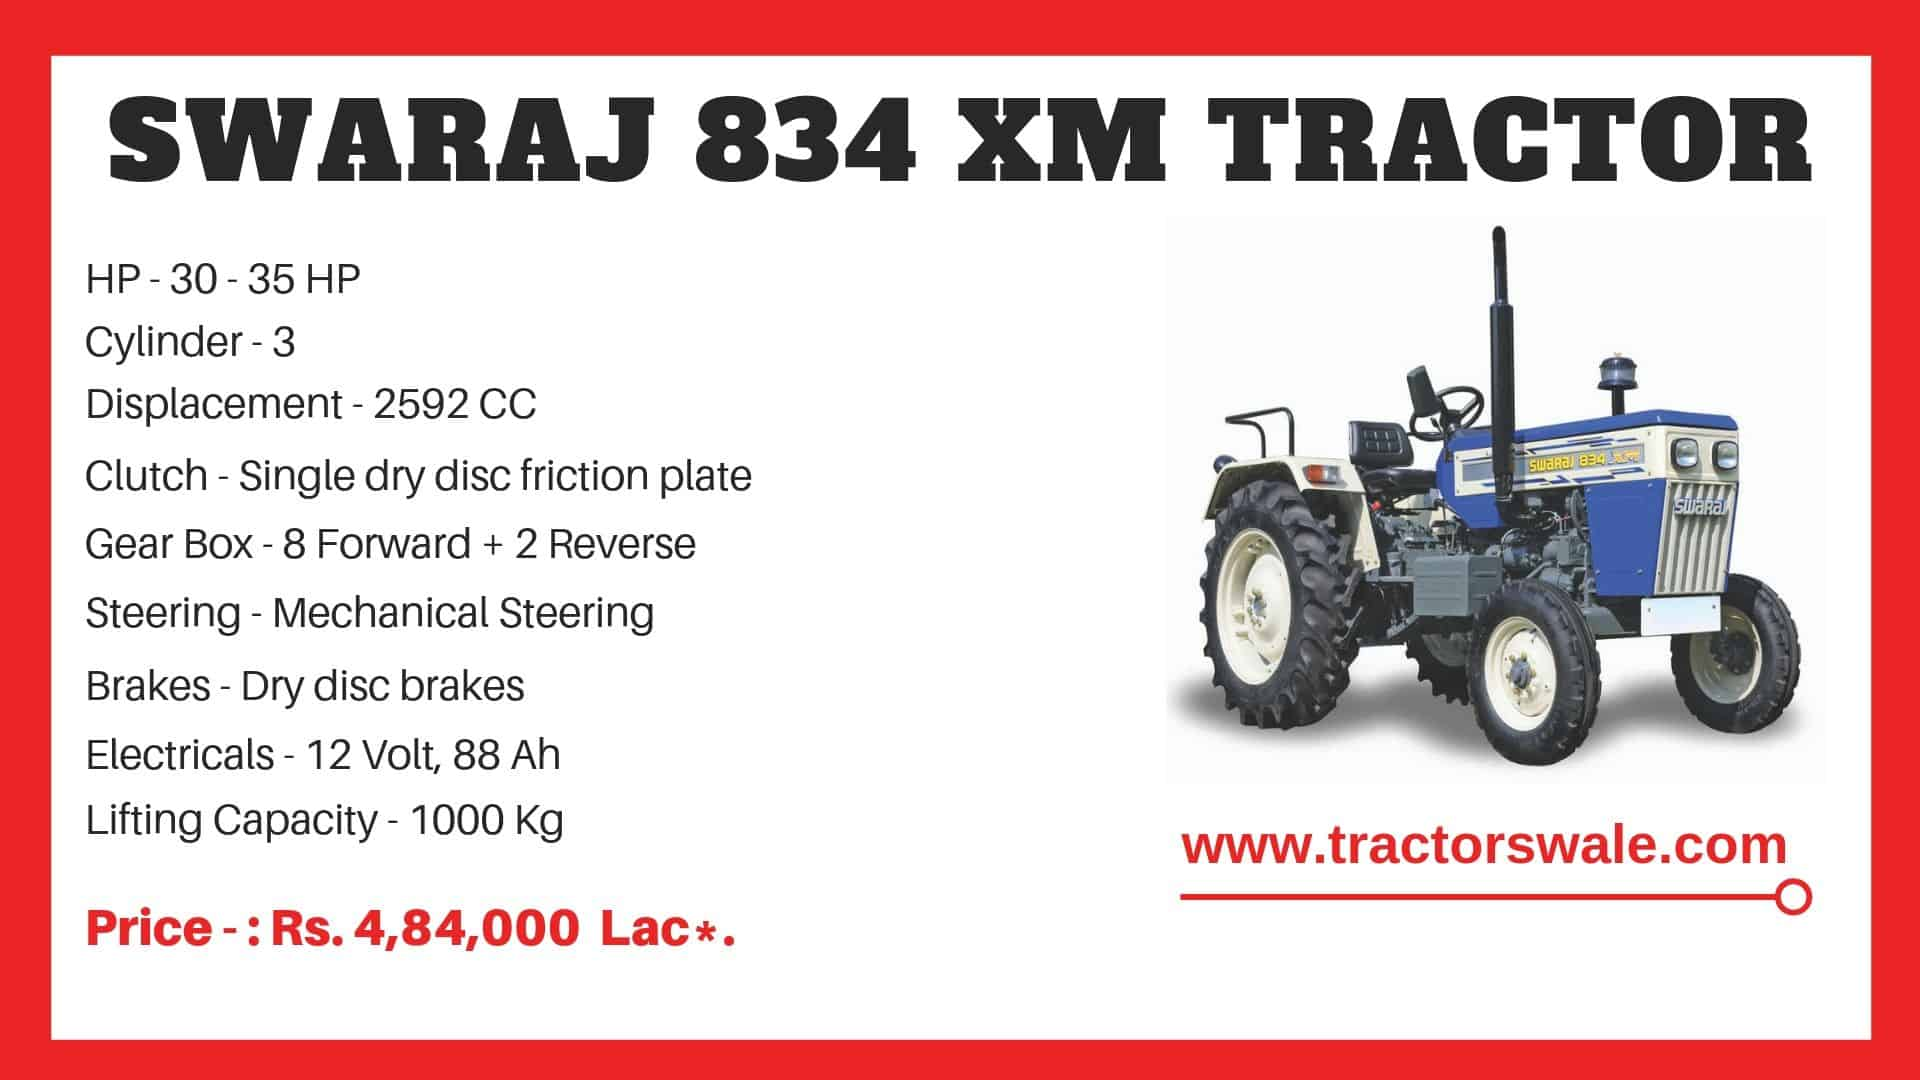 Specification of Swaraj 834 XM Track Tractor